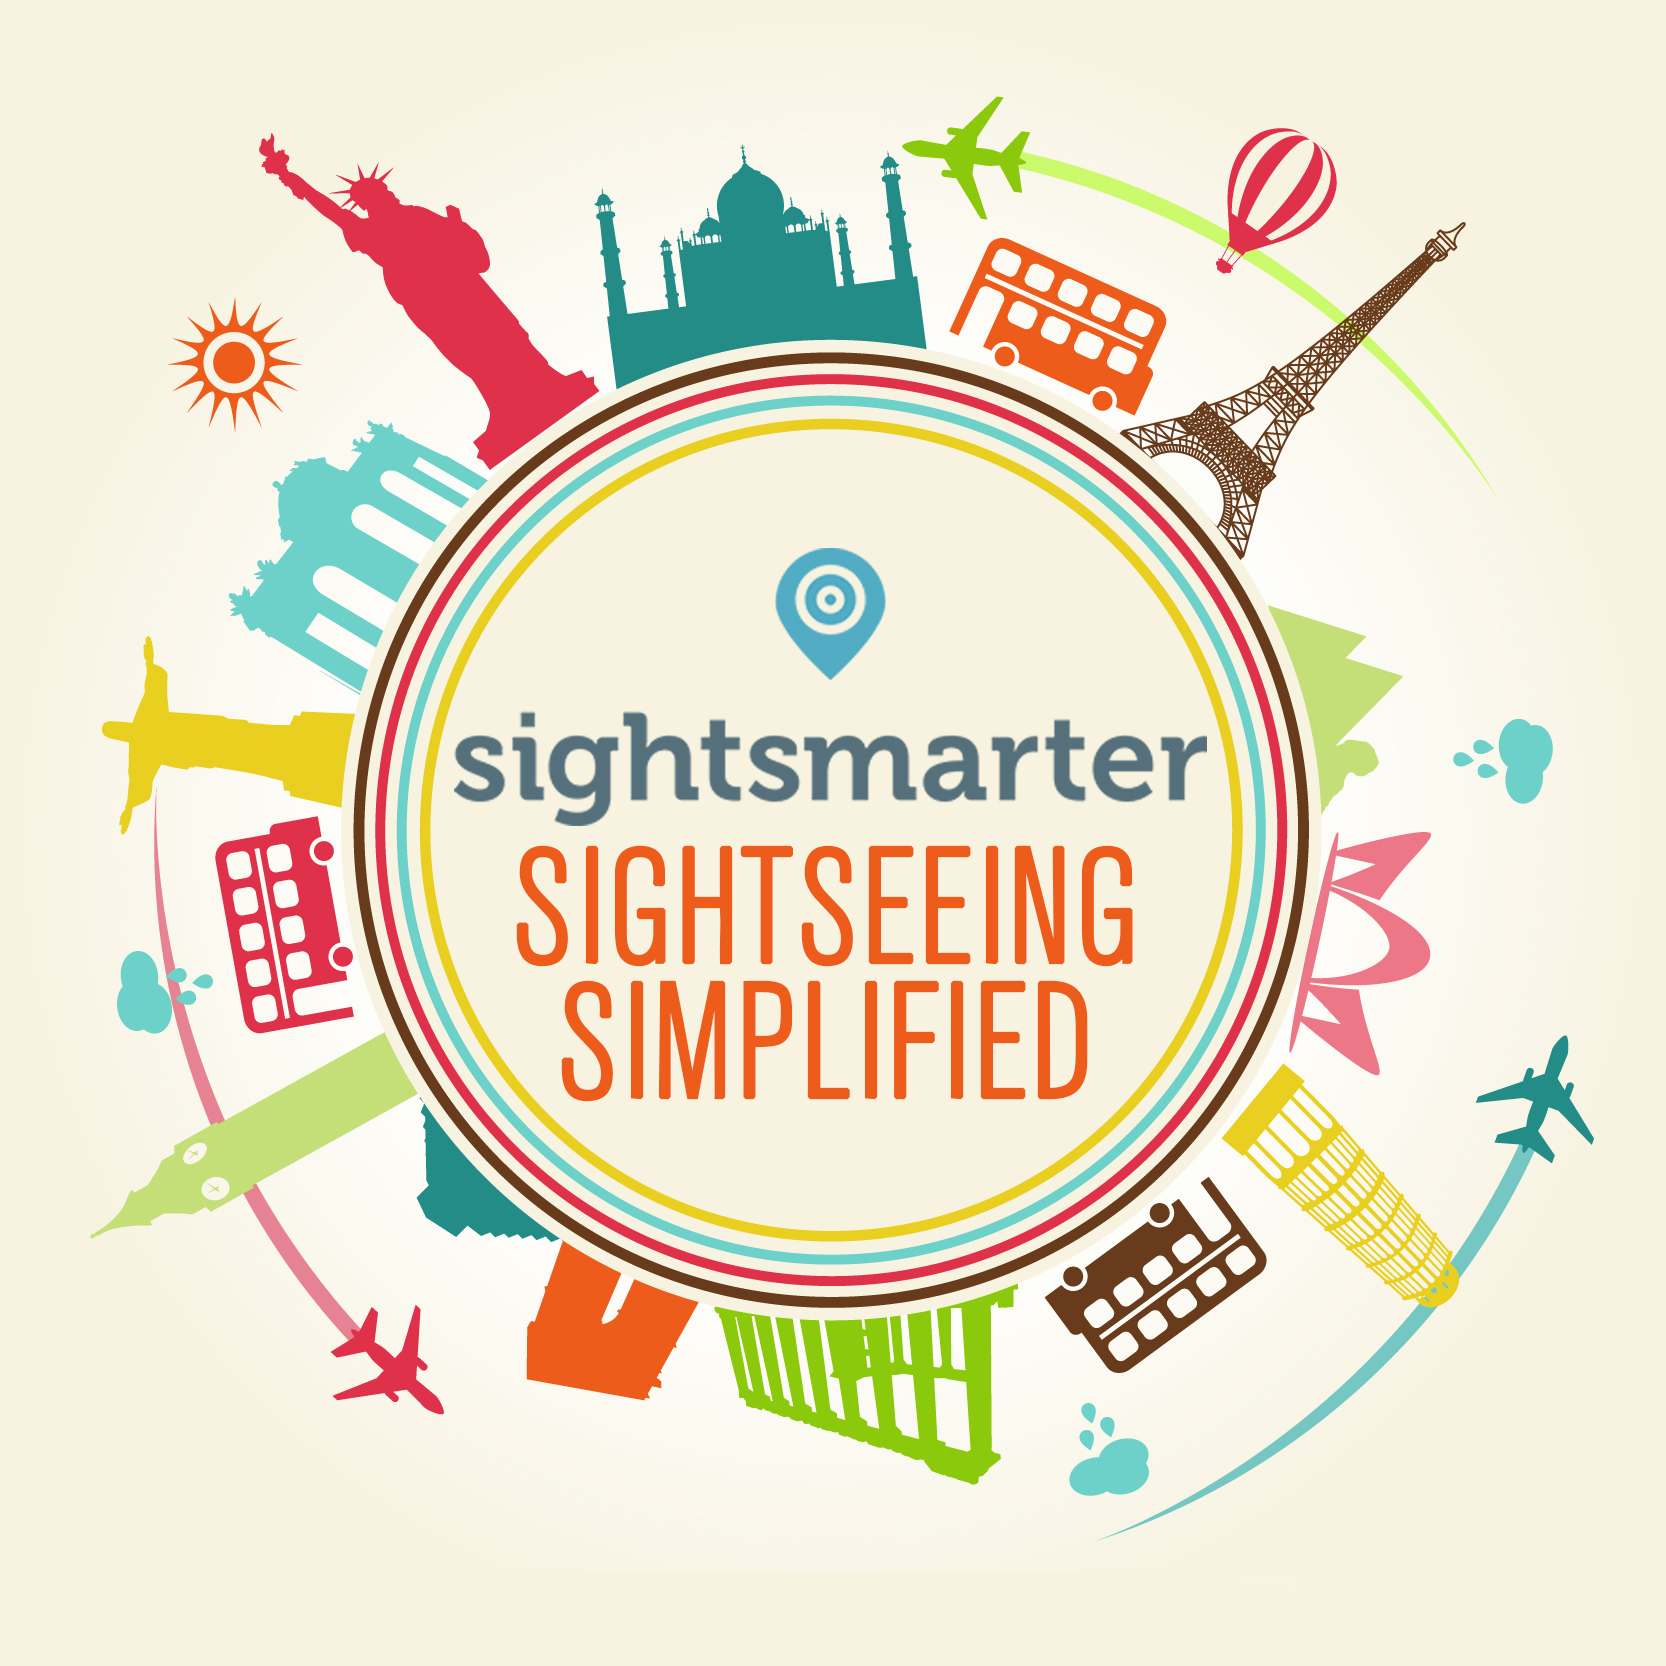 SIGHTSMARTER LAUNCH'S KICKSTARTER CAMPAIGN FOR APP